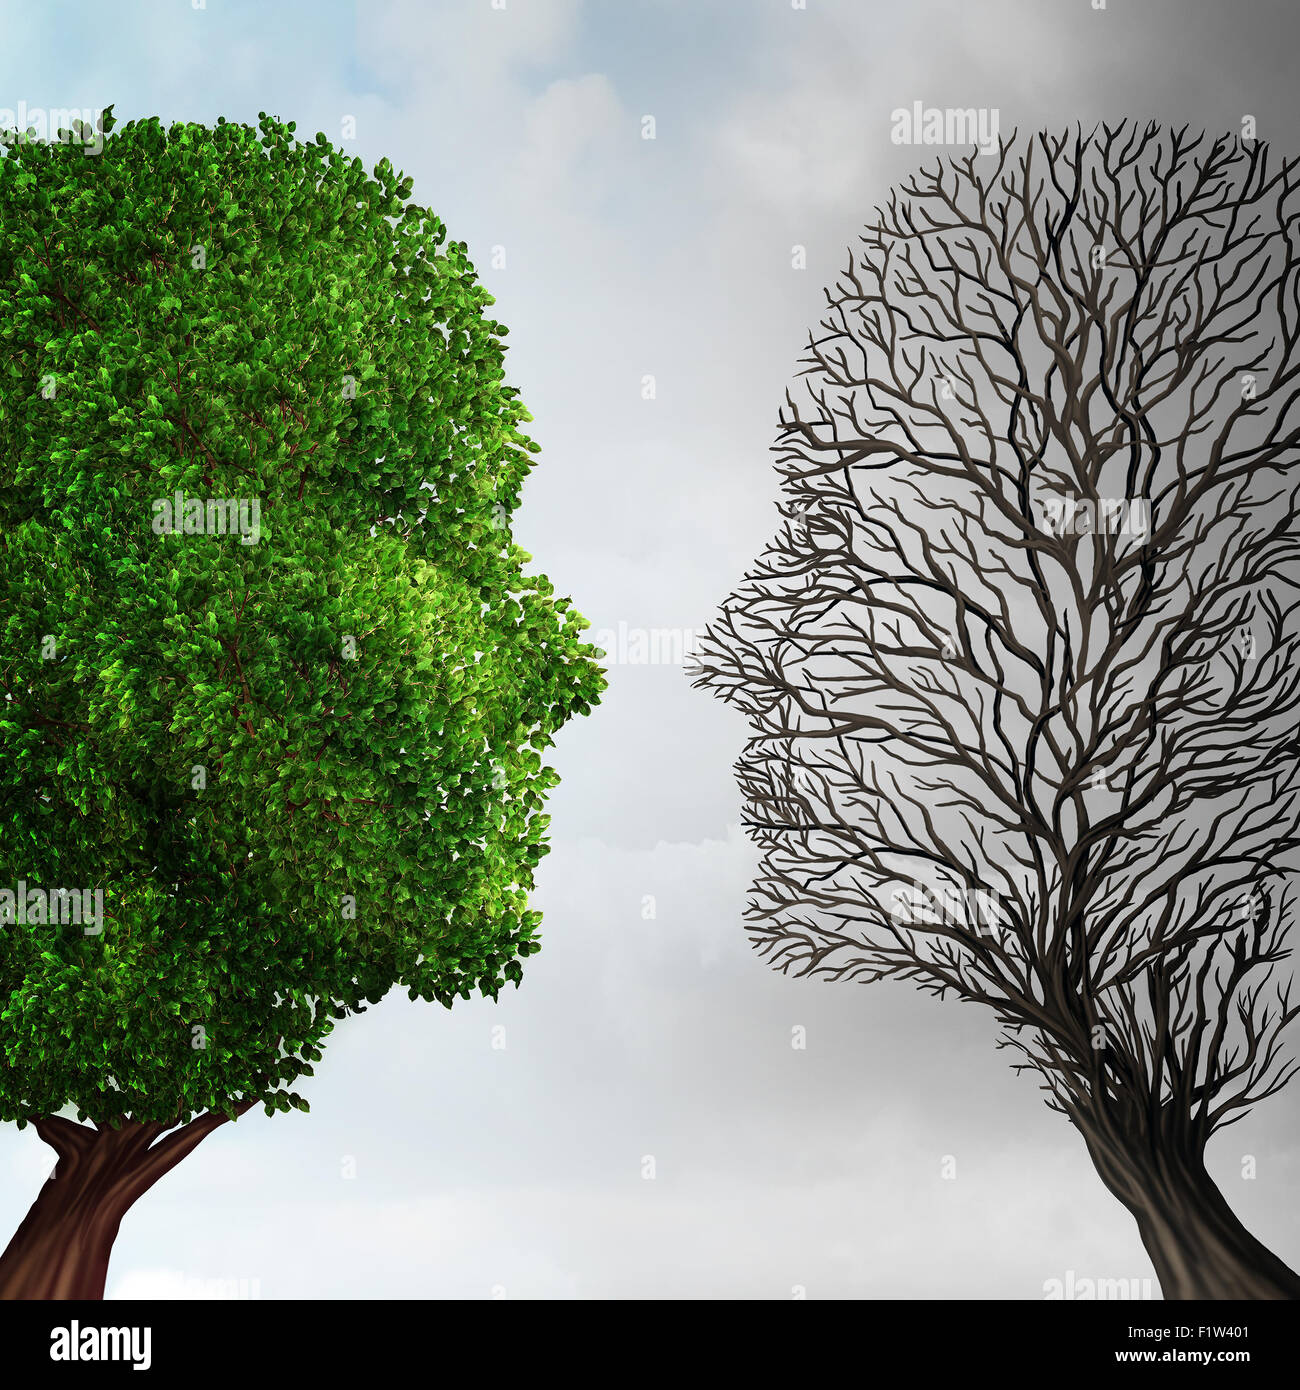 Social ecology and environment change or global warming environmental concept as a scene cut in two with half showing - Stock Image